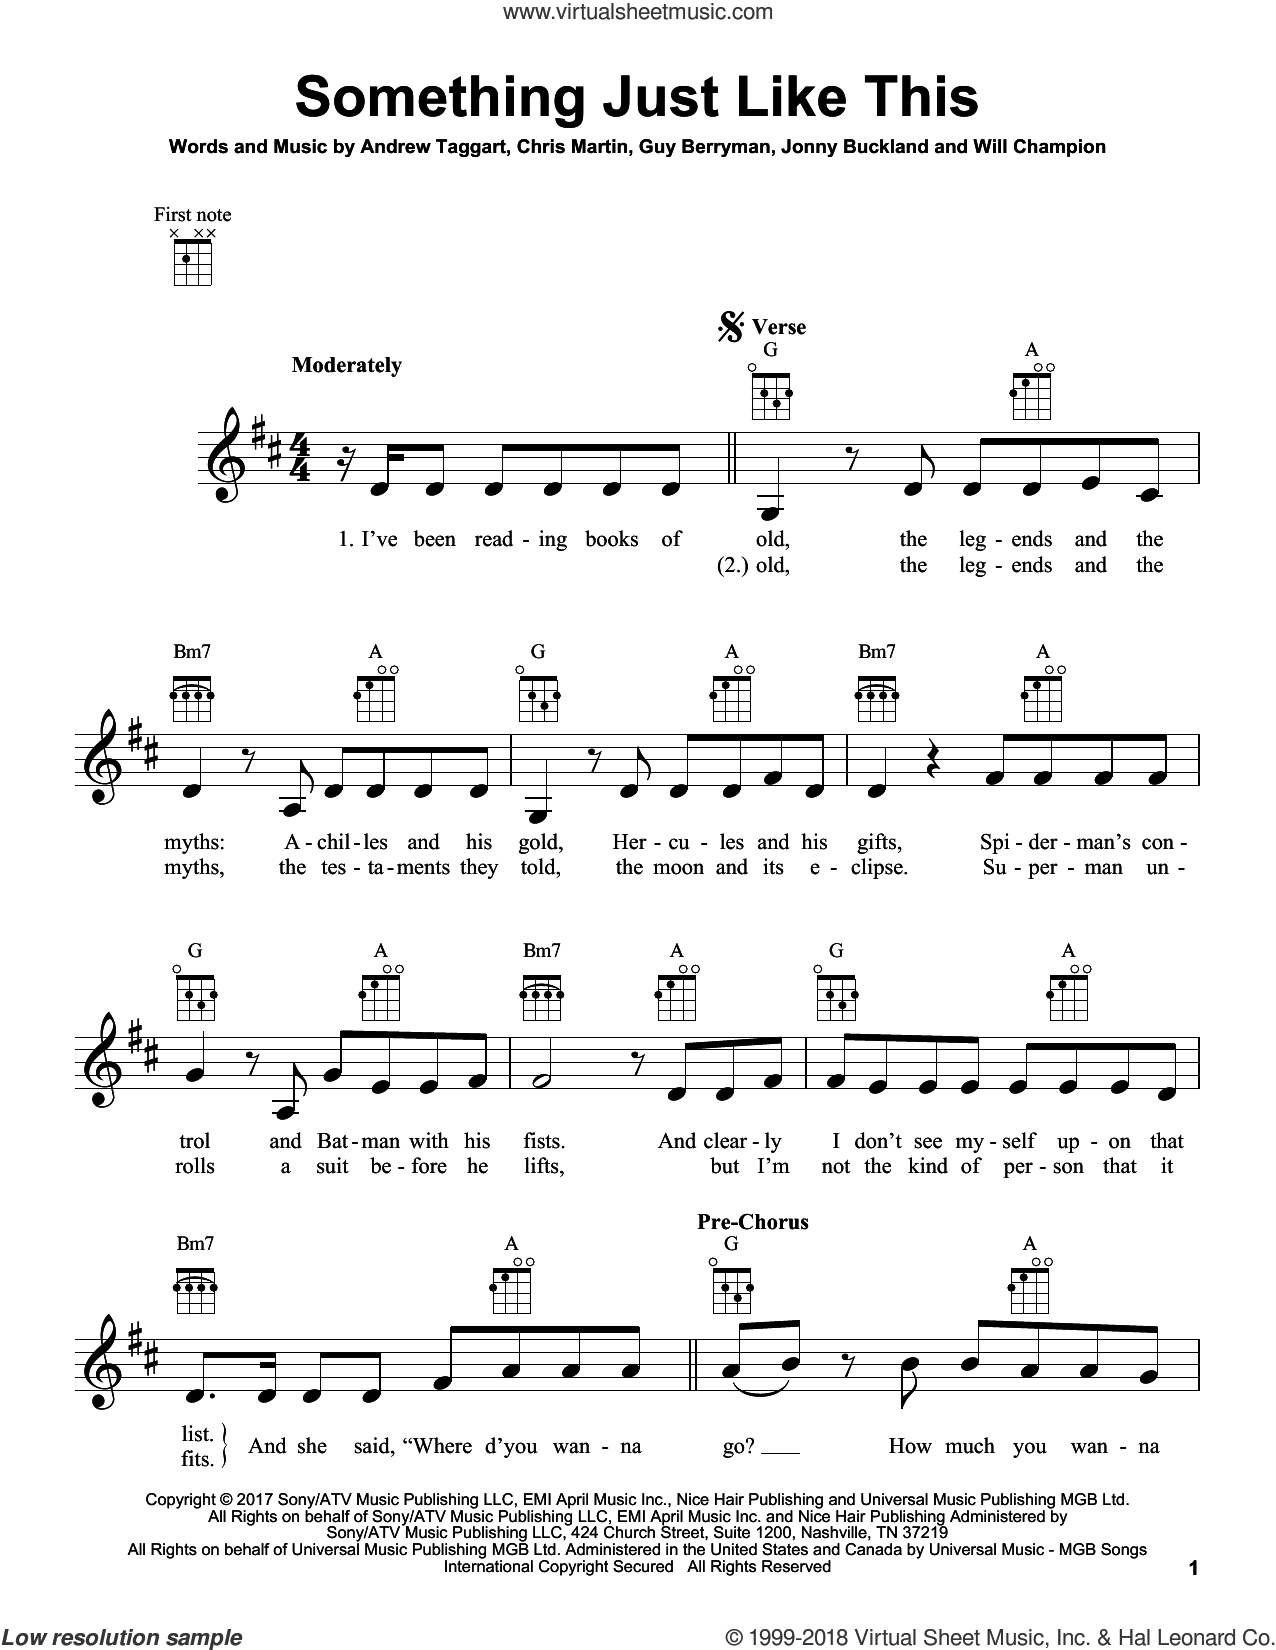 Something Just Like This sheet music for ukulele by The Chainsmokers & Coldplay, Andrew Taggart, Chris Martin, Guy Berryman, Jonny Buckland and Will Champion, intermediate skill level